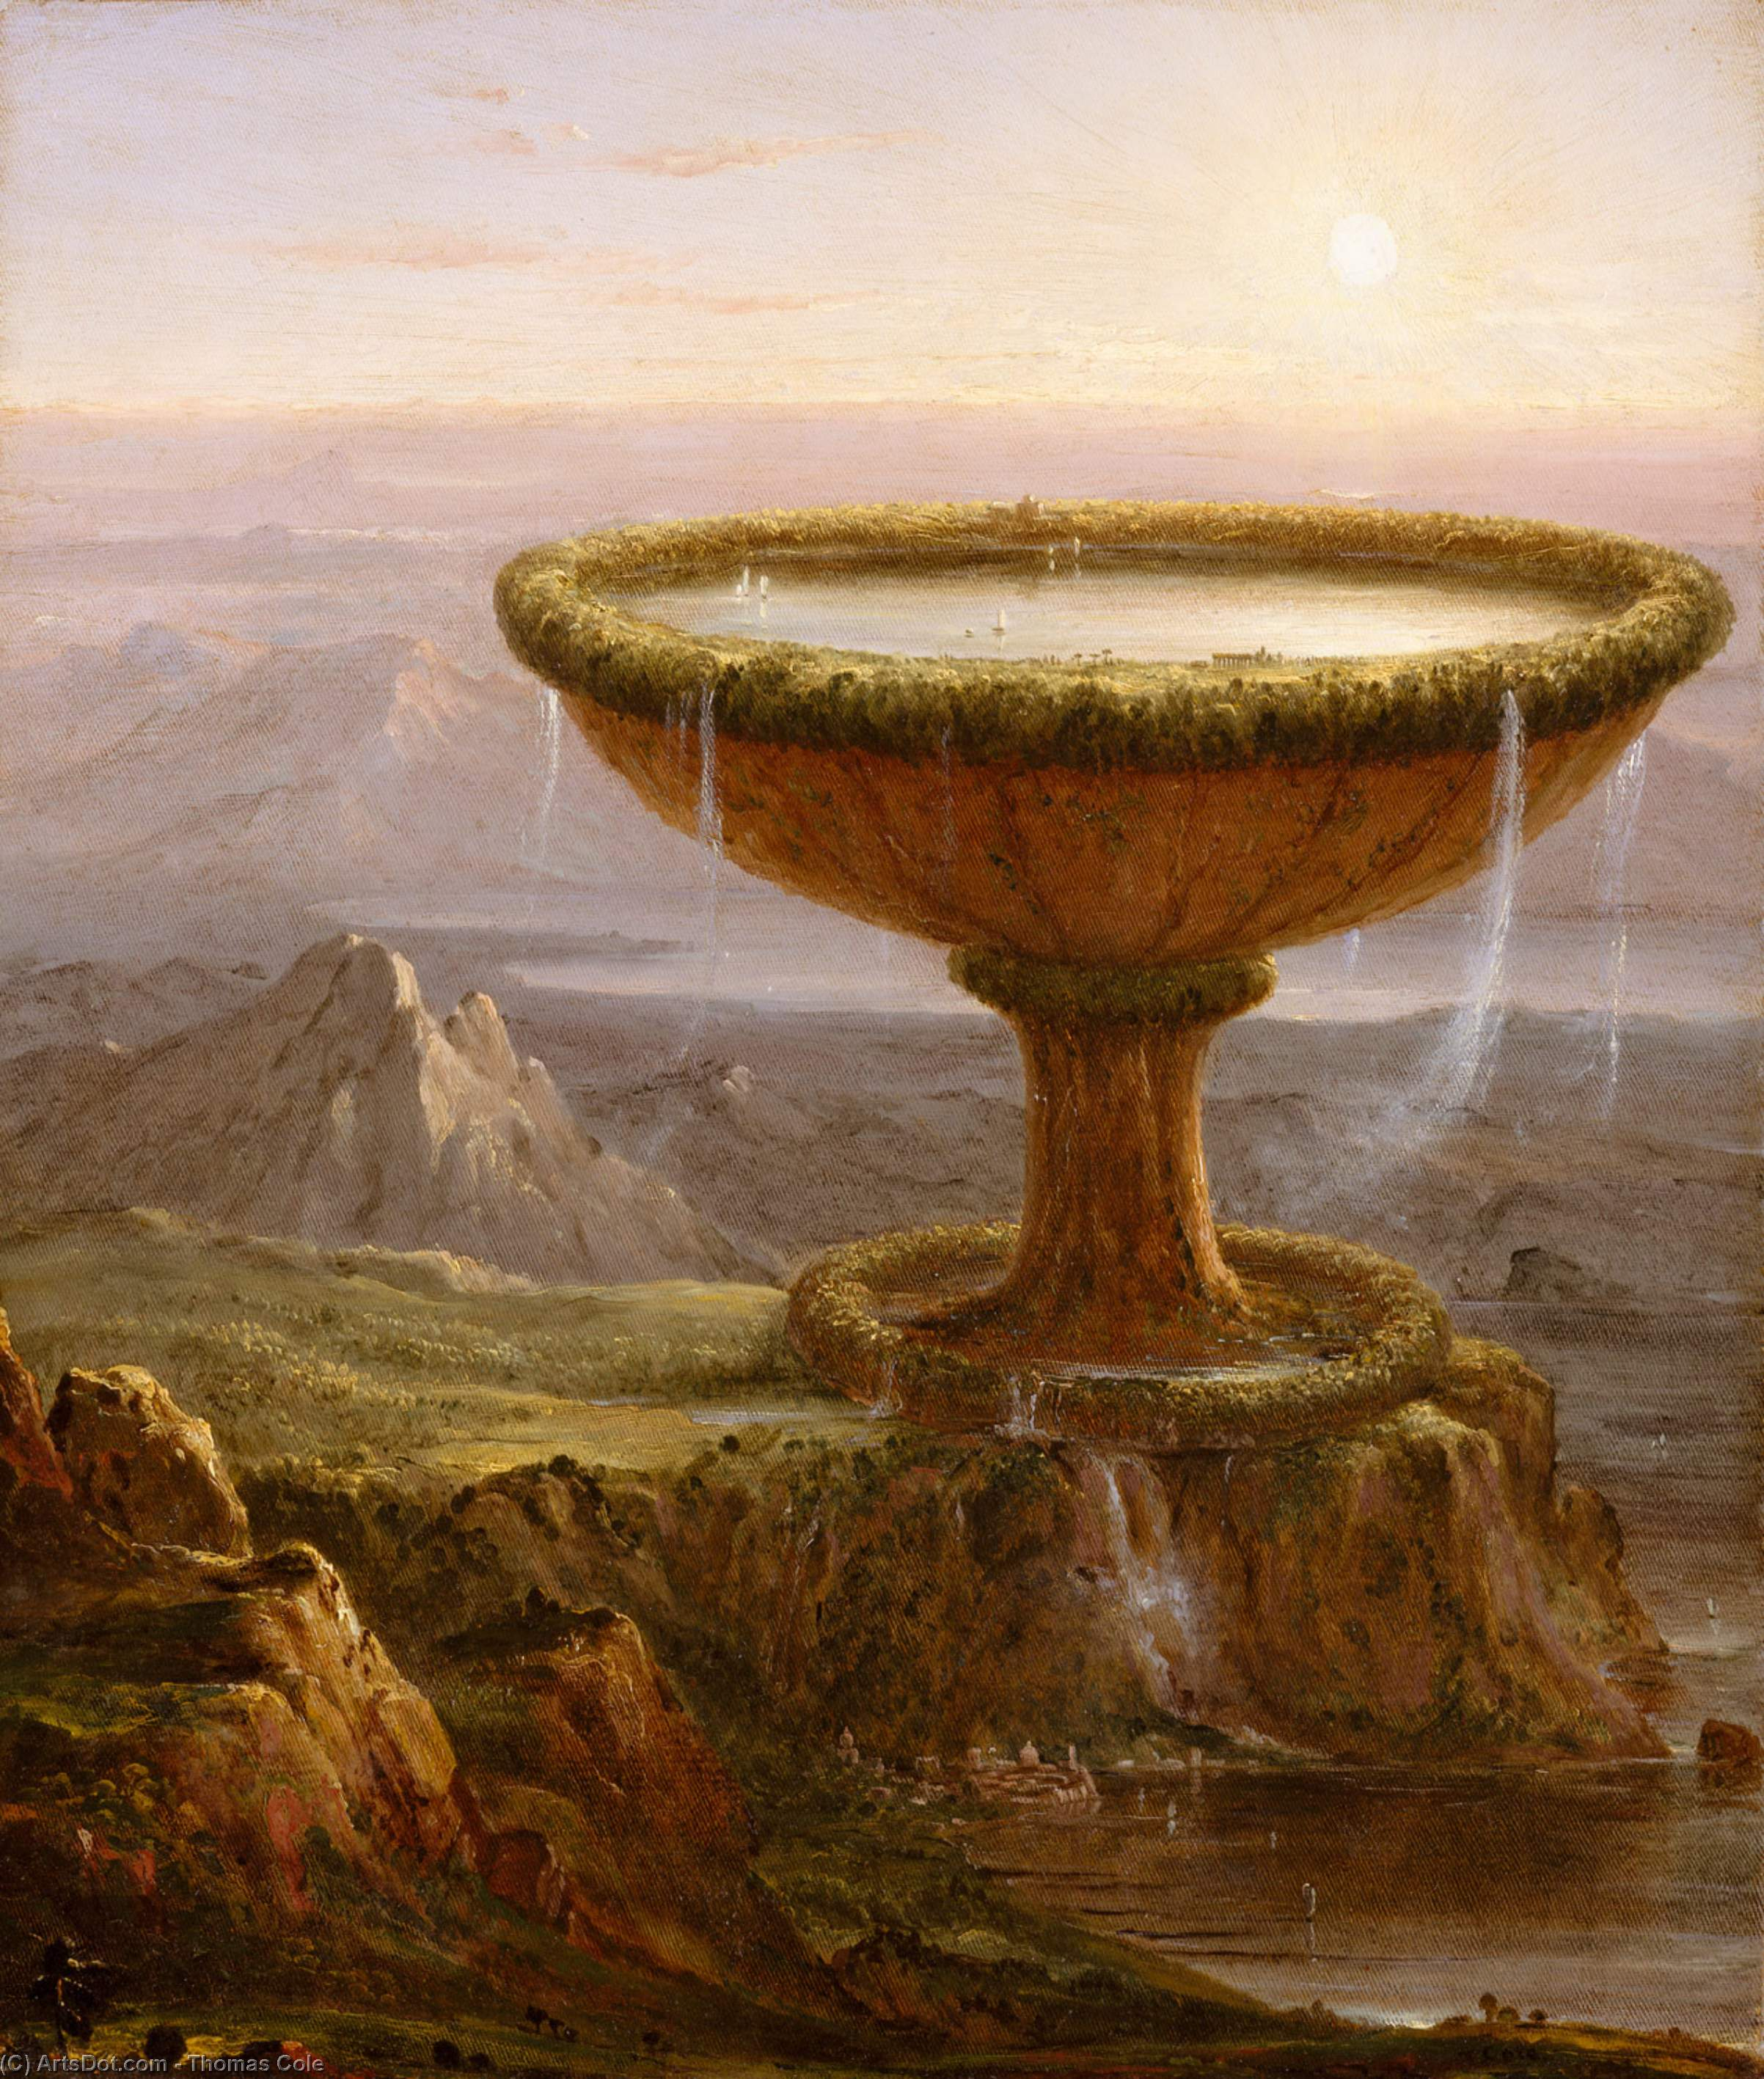 的 Titan`s 高脚杯, 油画 通过 Thomas Cole (1801-1848, United Kingdom)